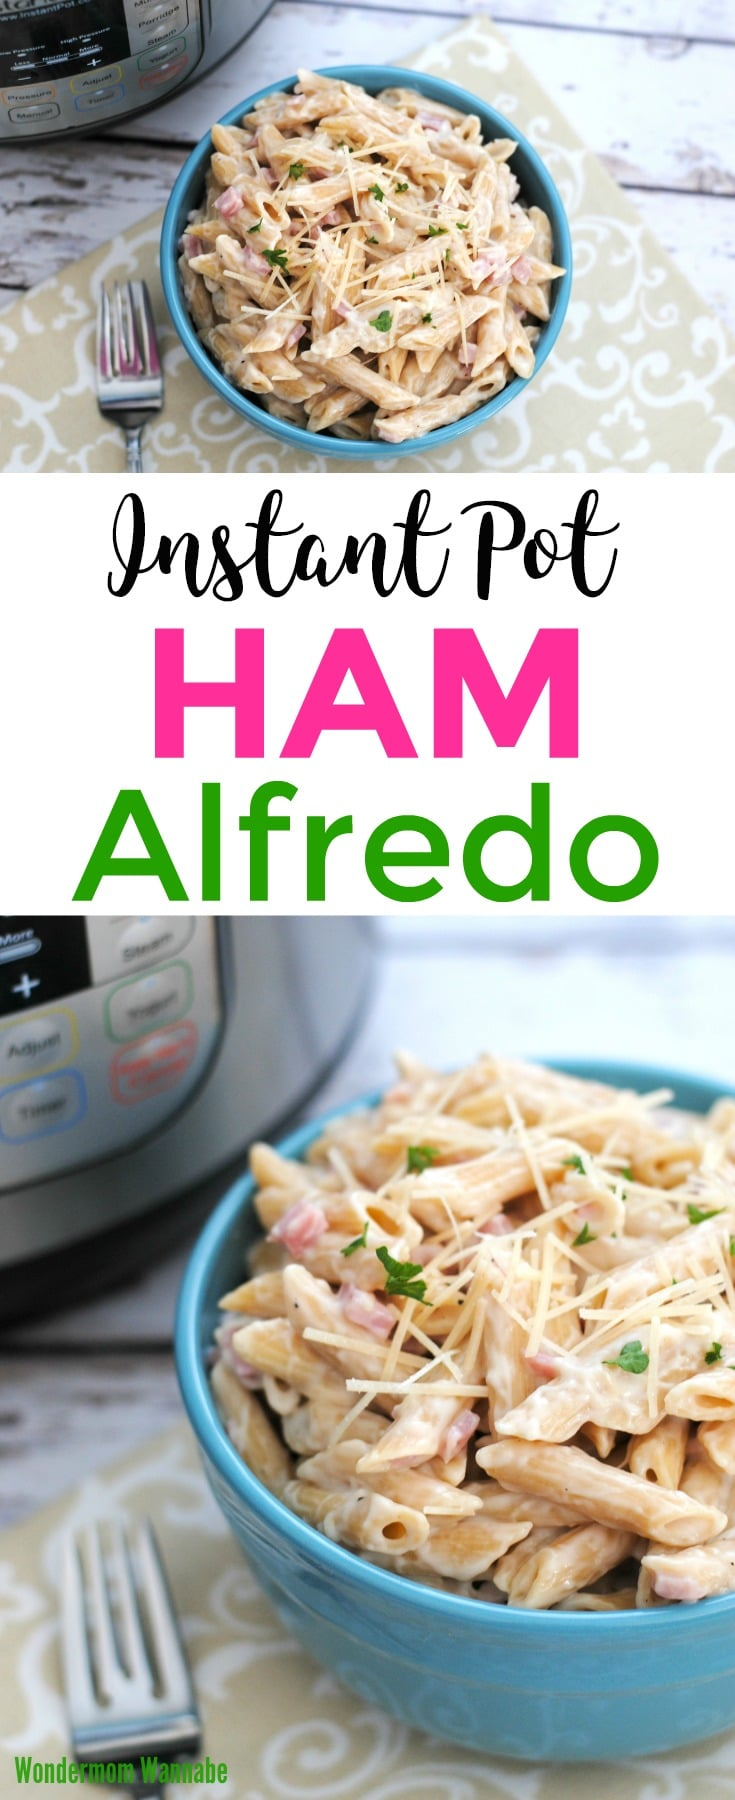 a collage of ham alfredo in a blue bowl with a fork next to it on a tan and white cloth on a wood table with an instant pot in the background with title text reading Instant Pot Ham Alfredo